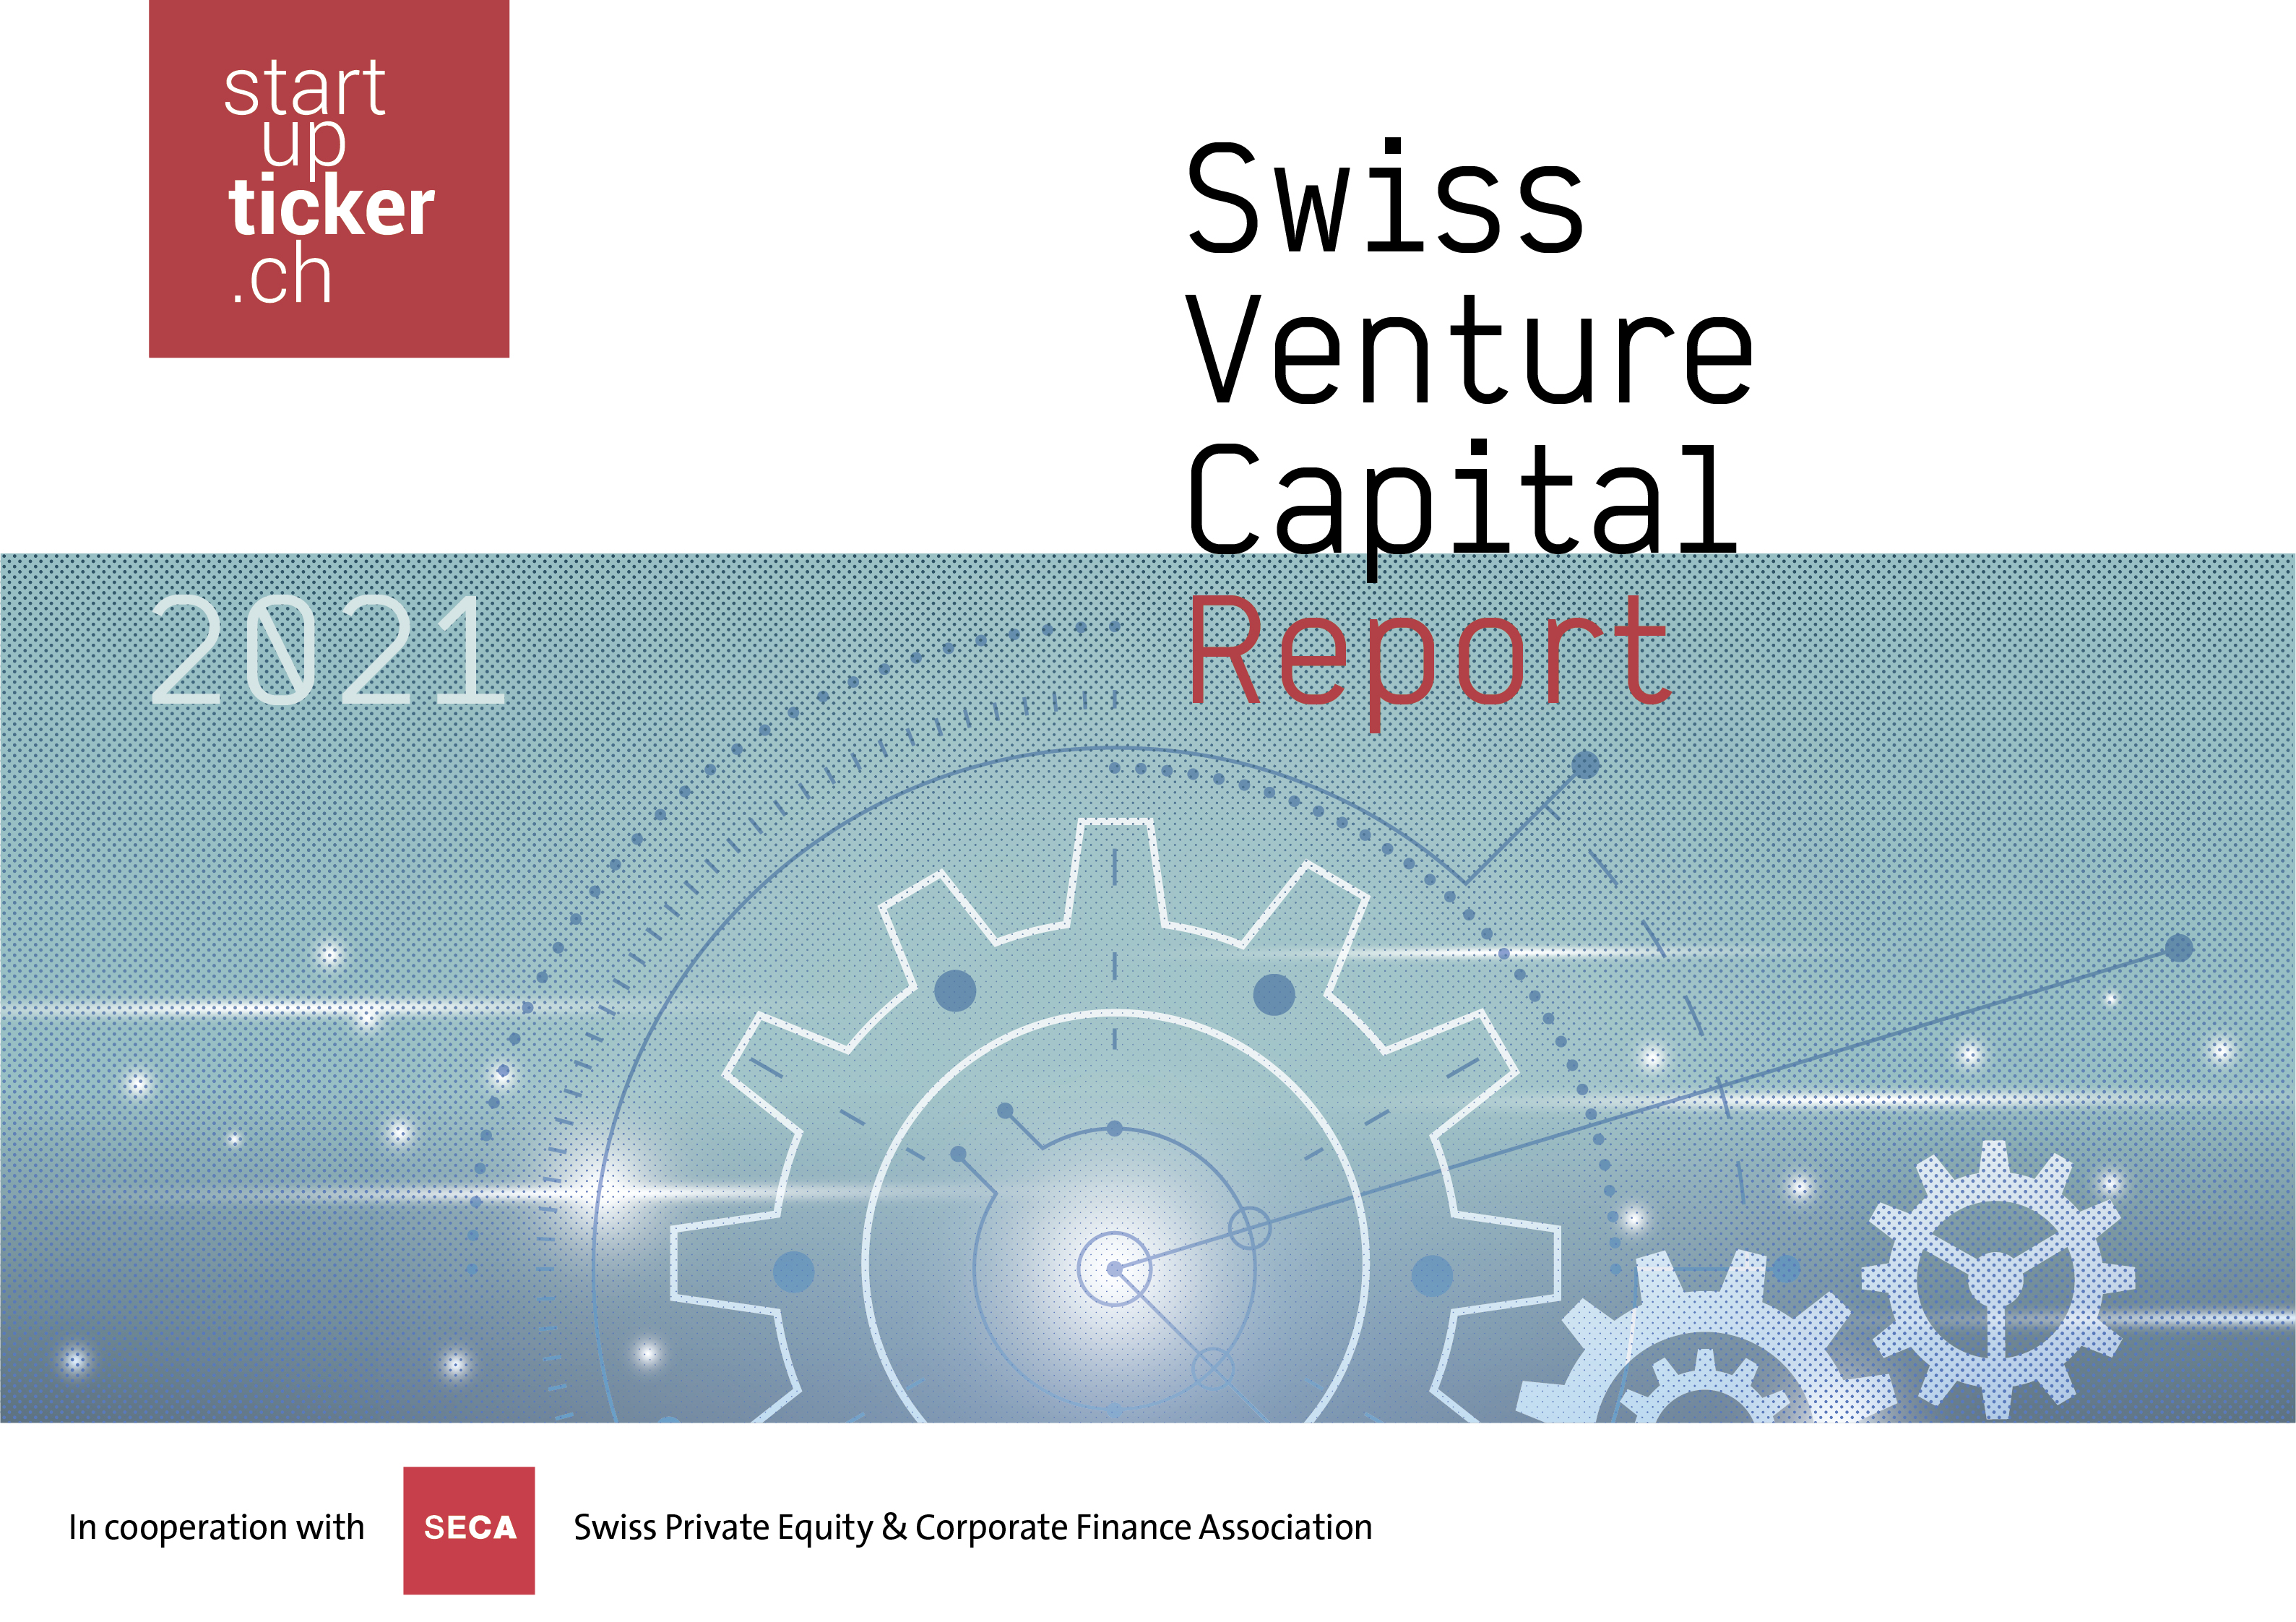 CHF 2.1 billion for start-ups: Stabilised at a high level